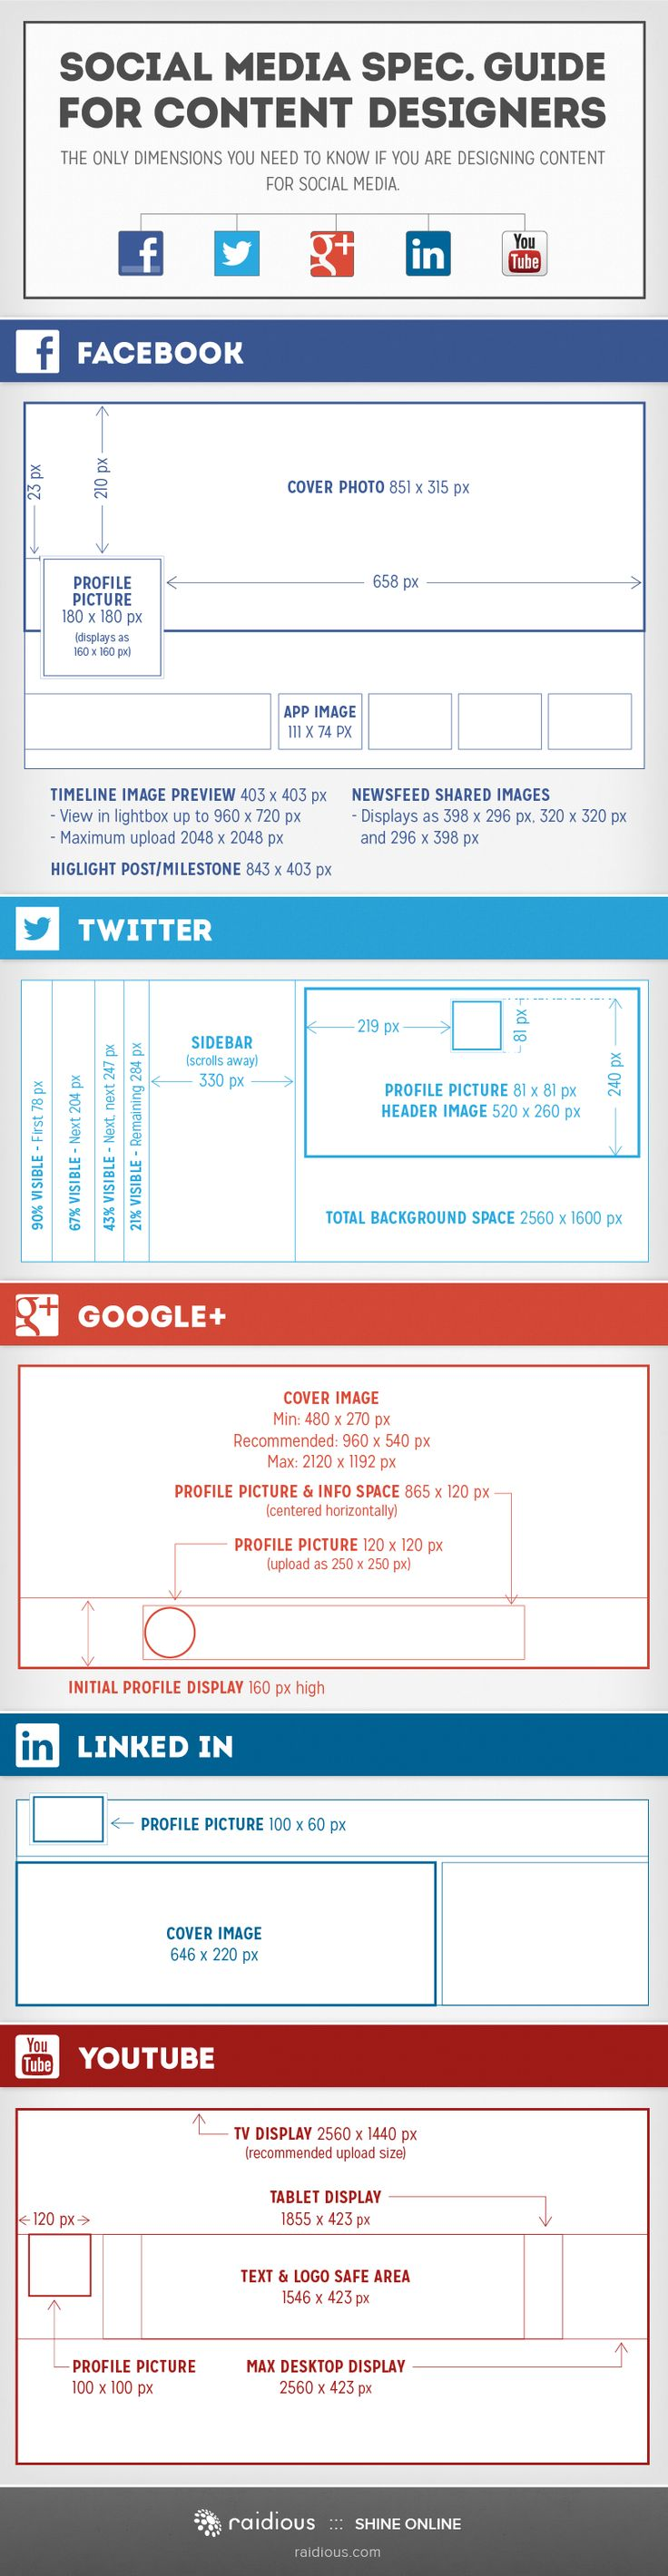 Visual content marketing resource - a template for image sizes for your social network profiles as at August 2013